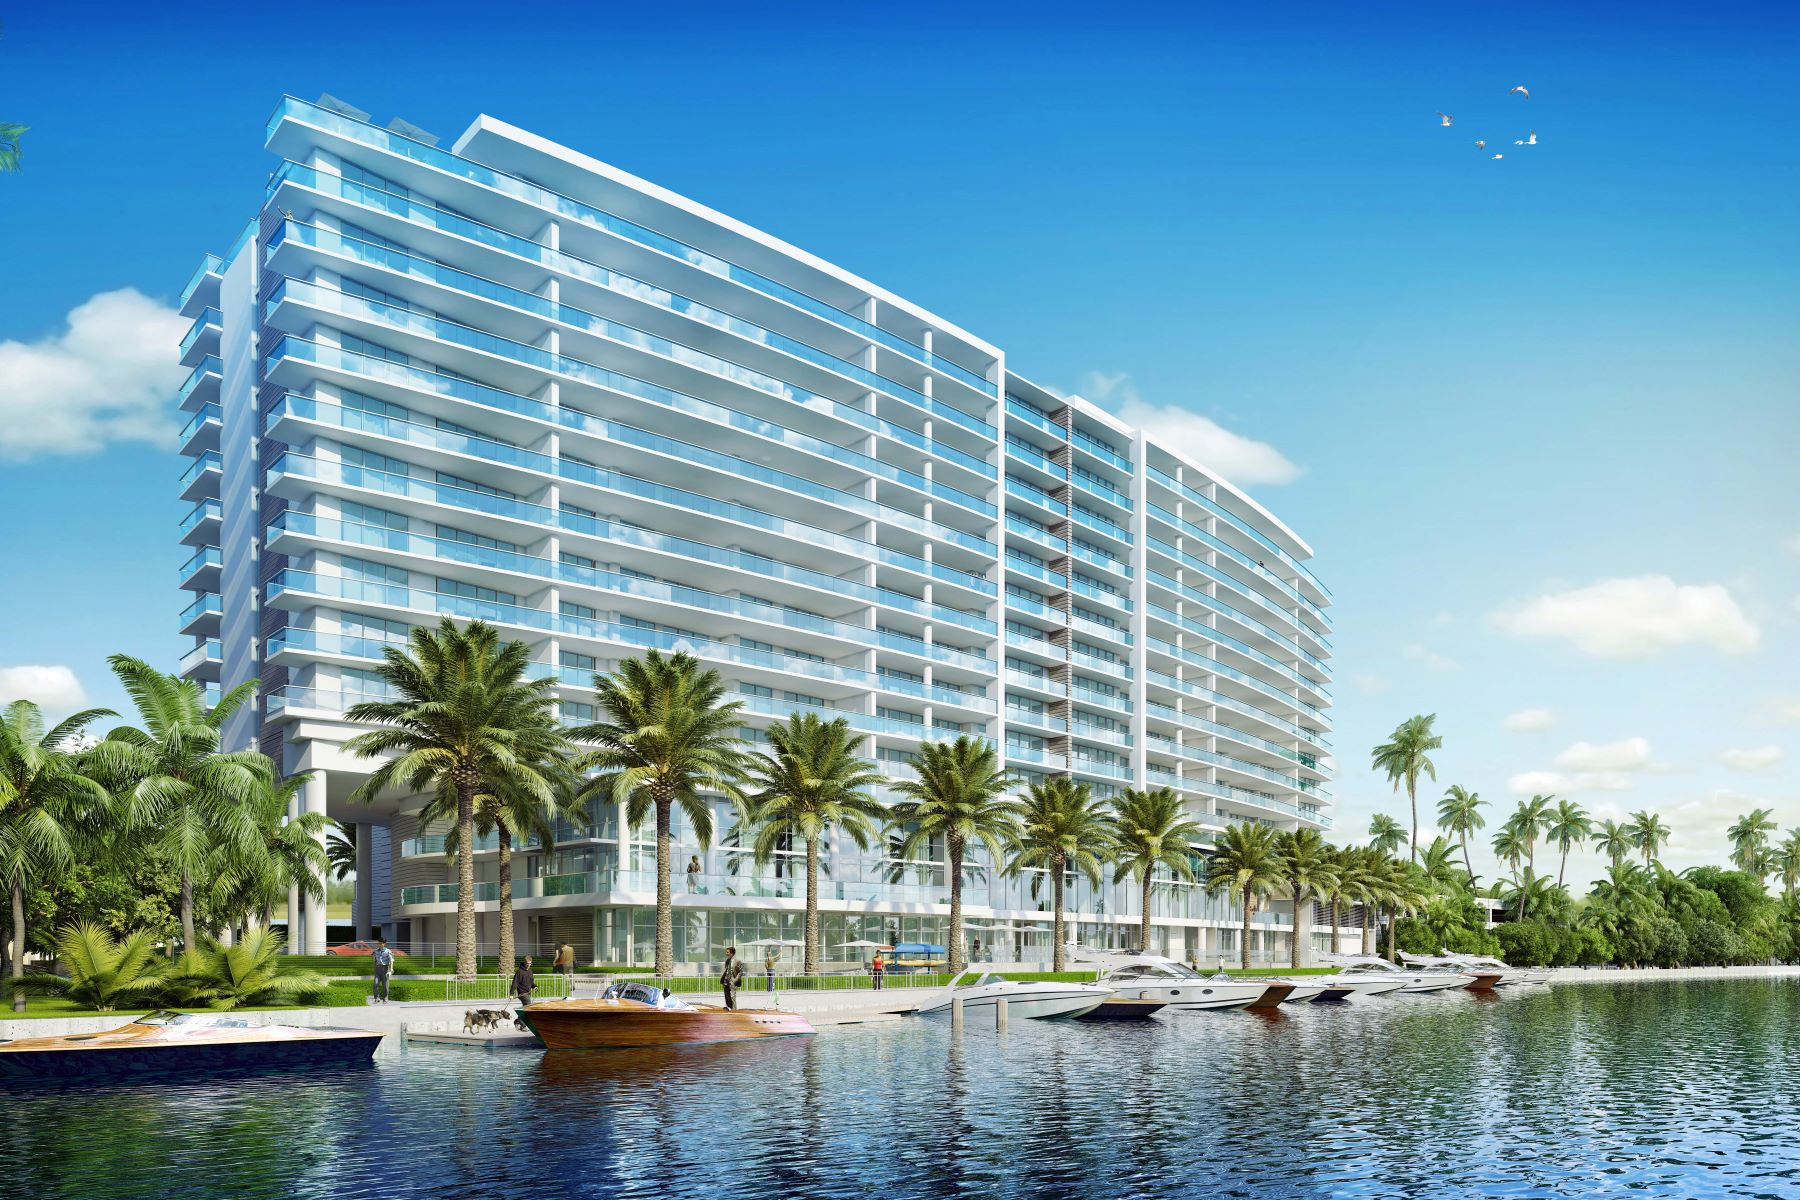 Appartement pour l Vente à 1180 N Federal Hwy #510 1180 N Federal Hwy 510 Fort Lauderdale, Florida, 33304 États-Unis